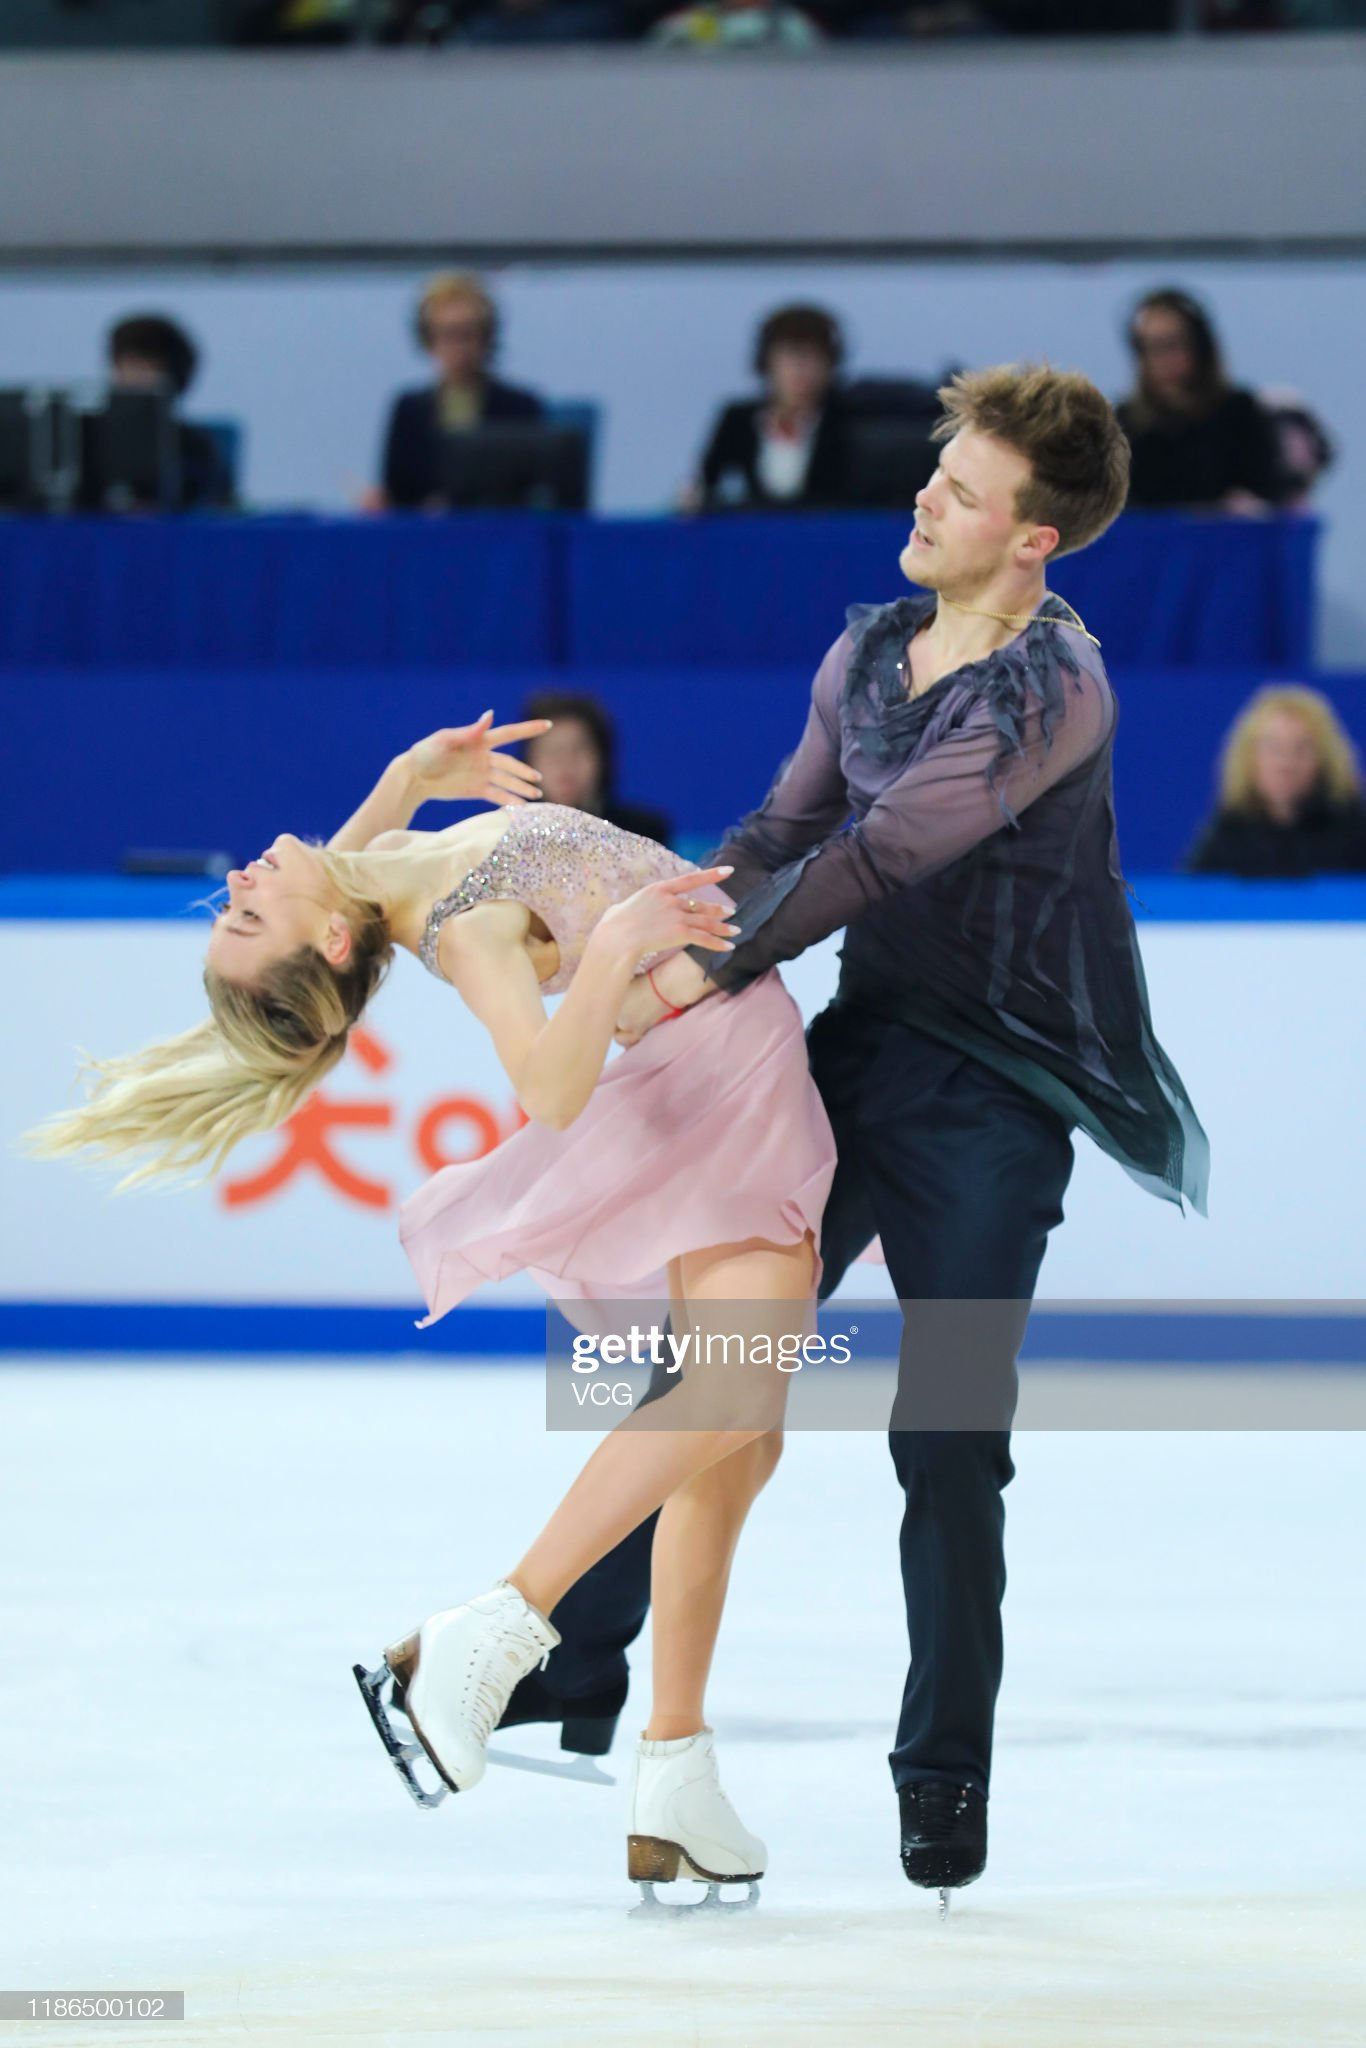 https://media.gettyimages.com/photos/victoria-sinitsina-and-nikita-katsalapov-of-russia-perform-in-the-ice-picture-id1186500102?s=2048x2048